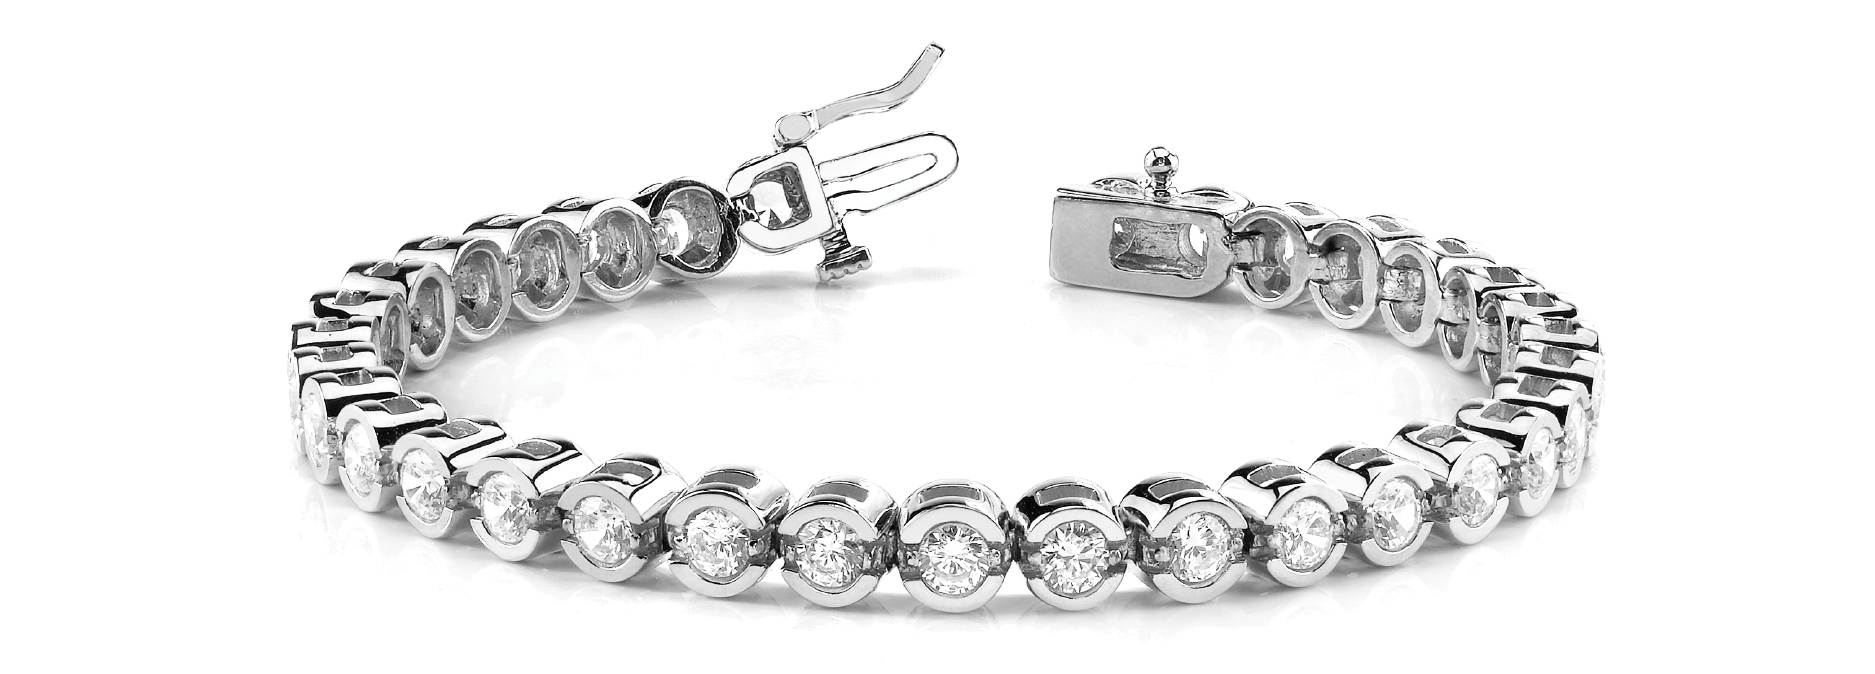 2.5 Carat Round Diamond Square Tennis Bracelet